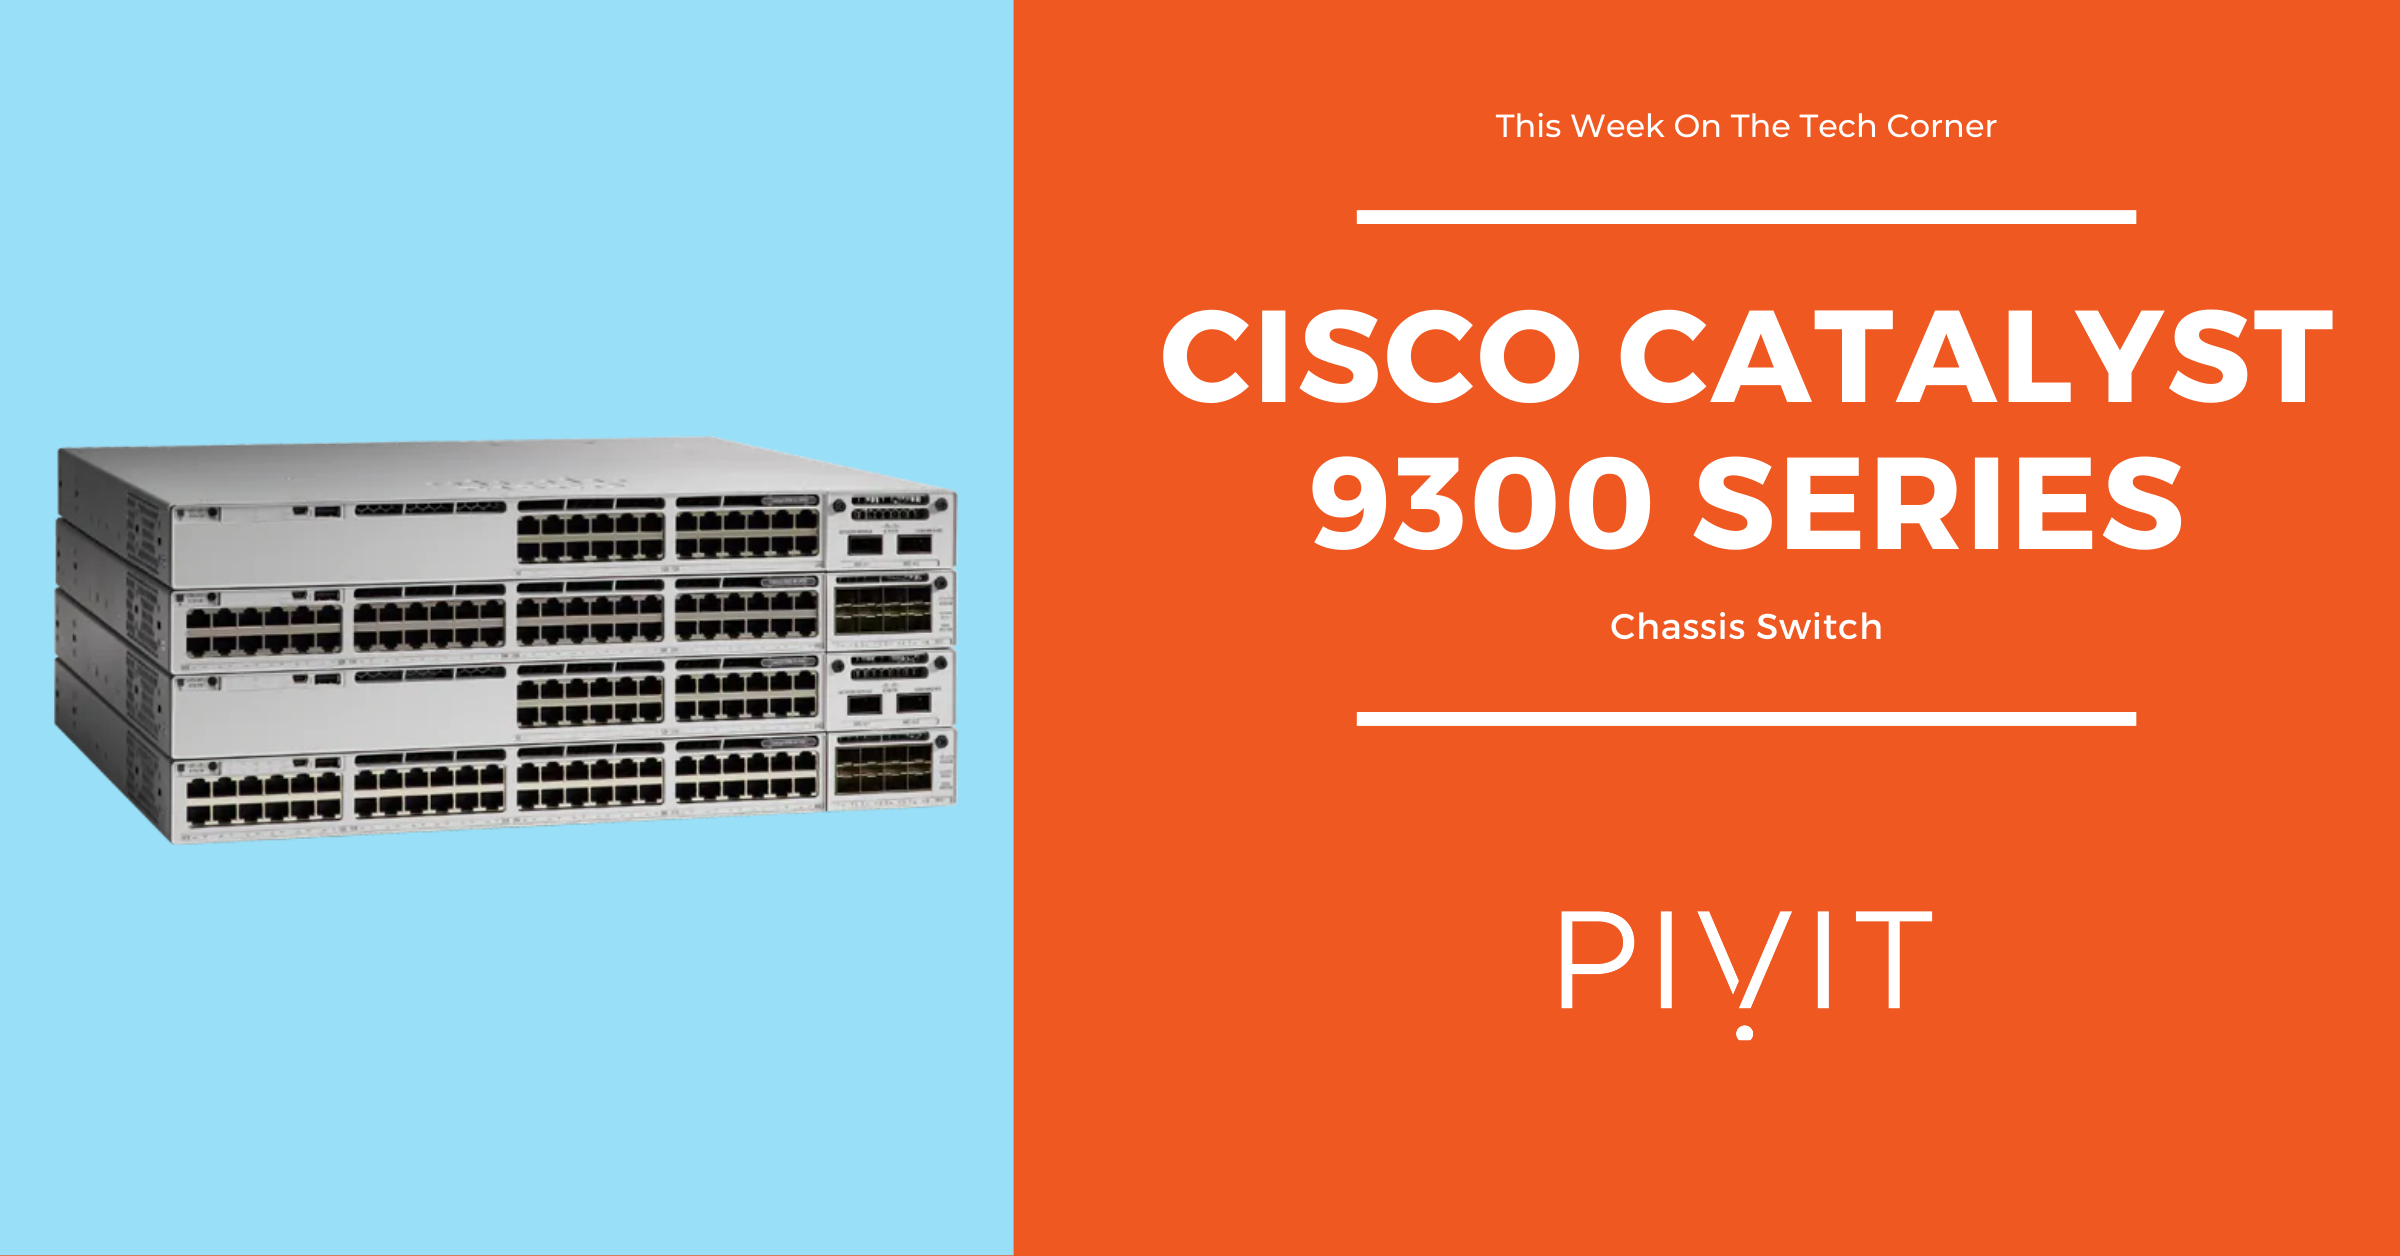 Cisco Catalyst 9300 Series Chassis Switch image/poster/banner